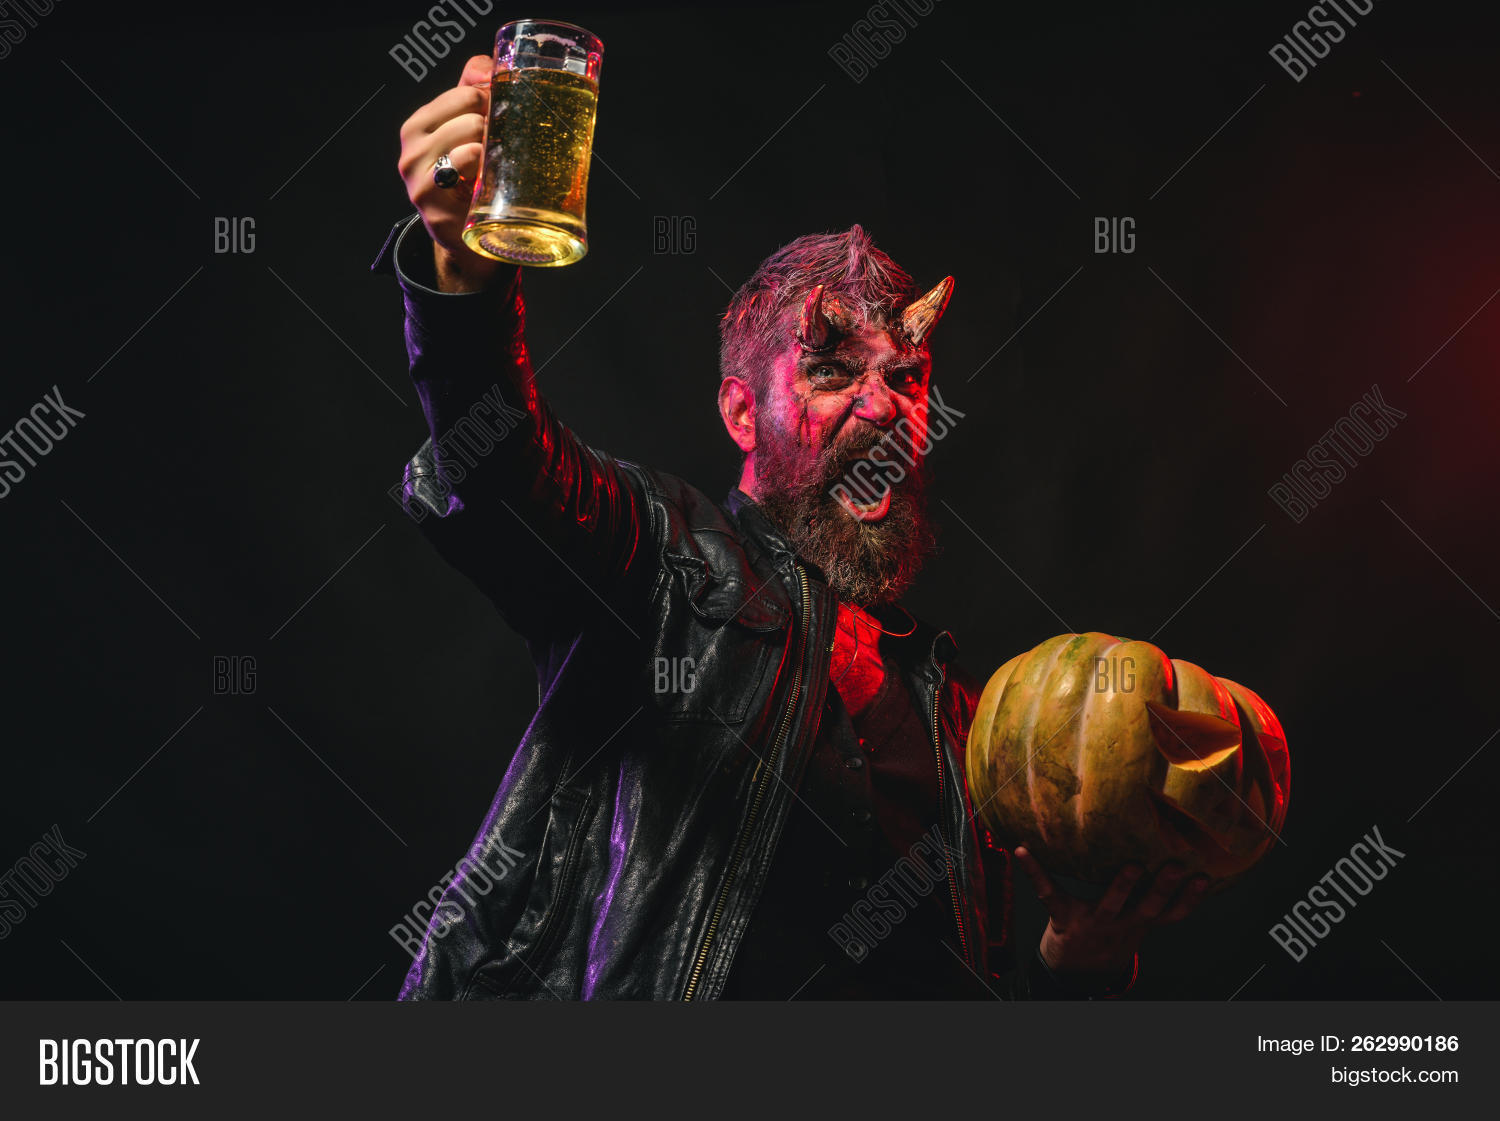 Halloween Maan.Halloween Man Satan Image Photo Free Trial Bigstock